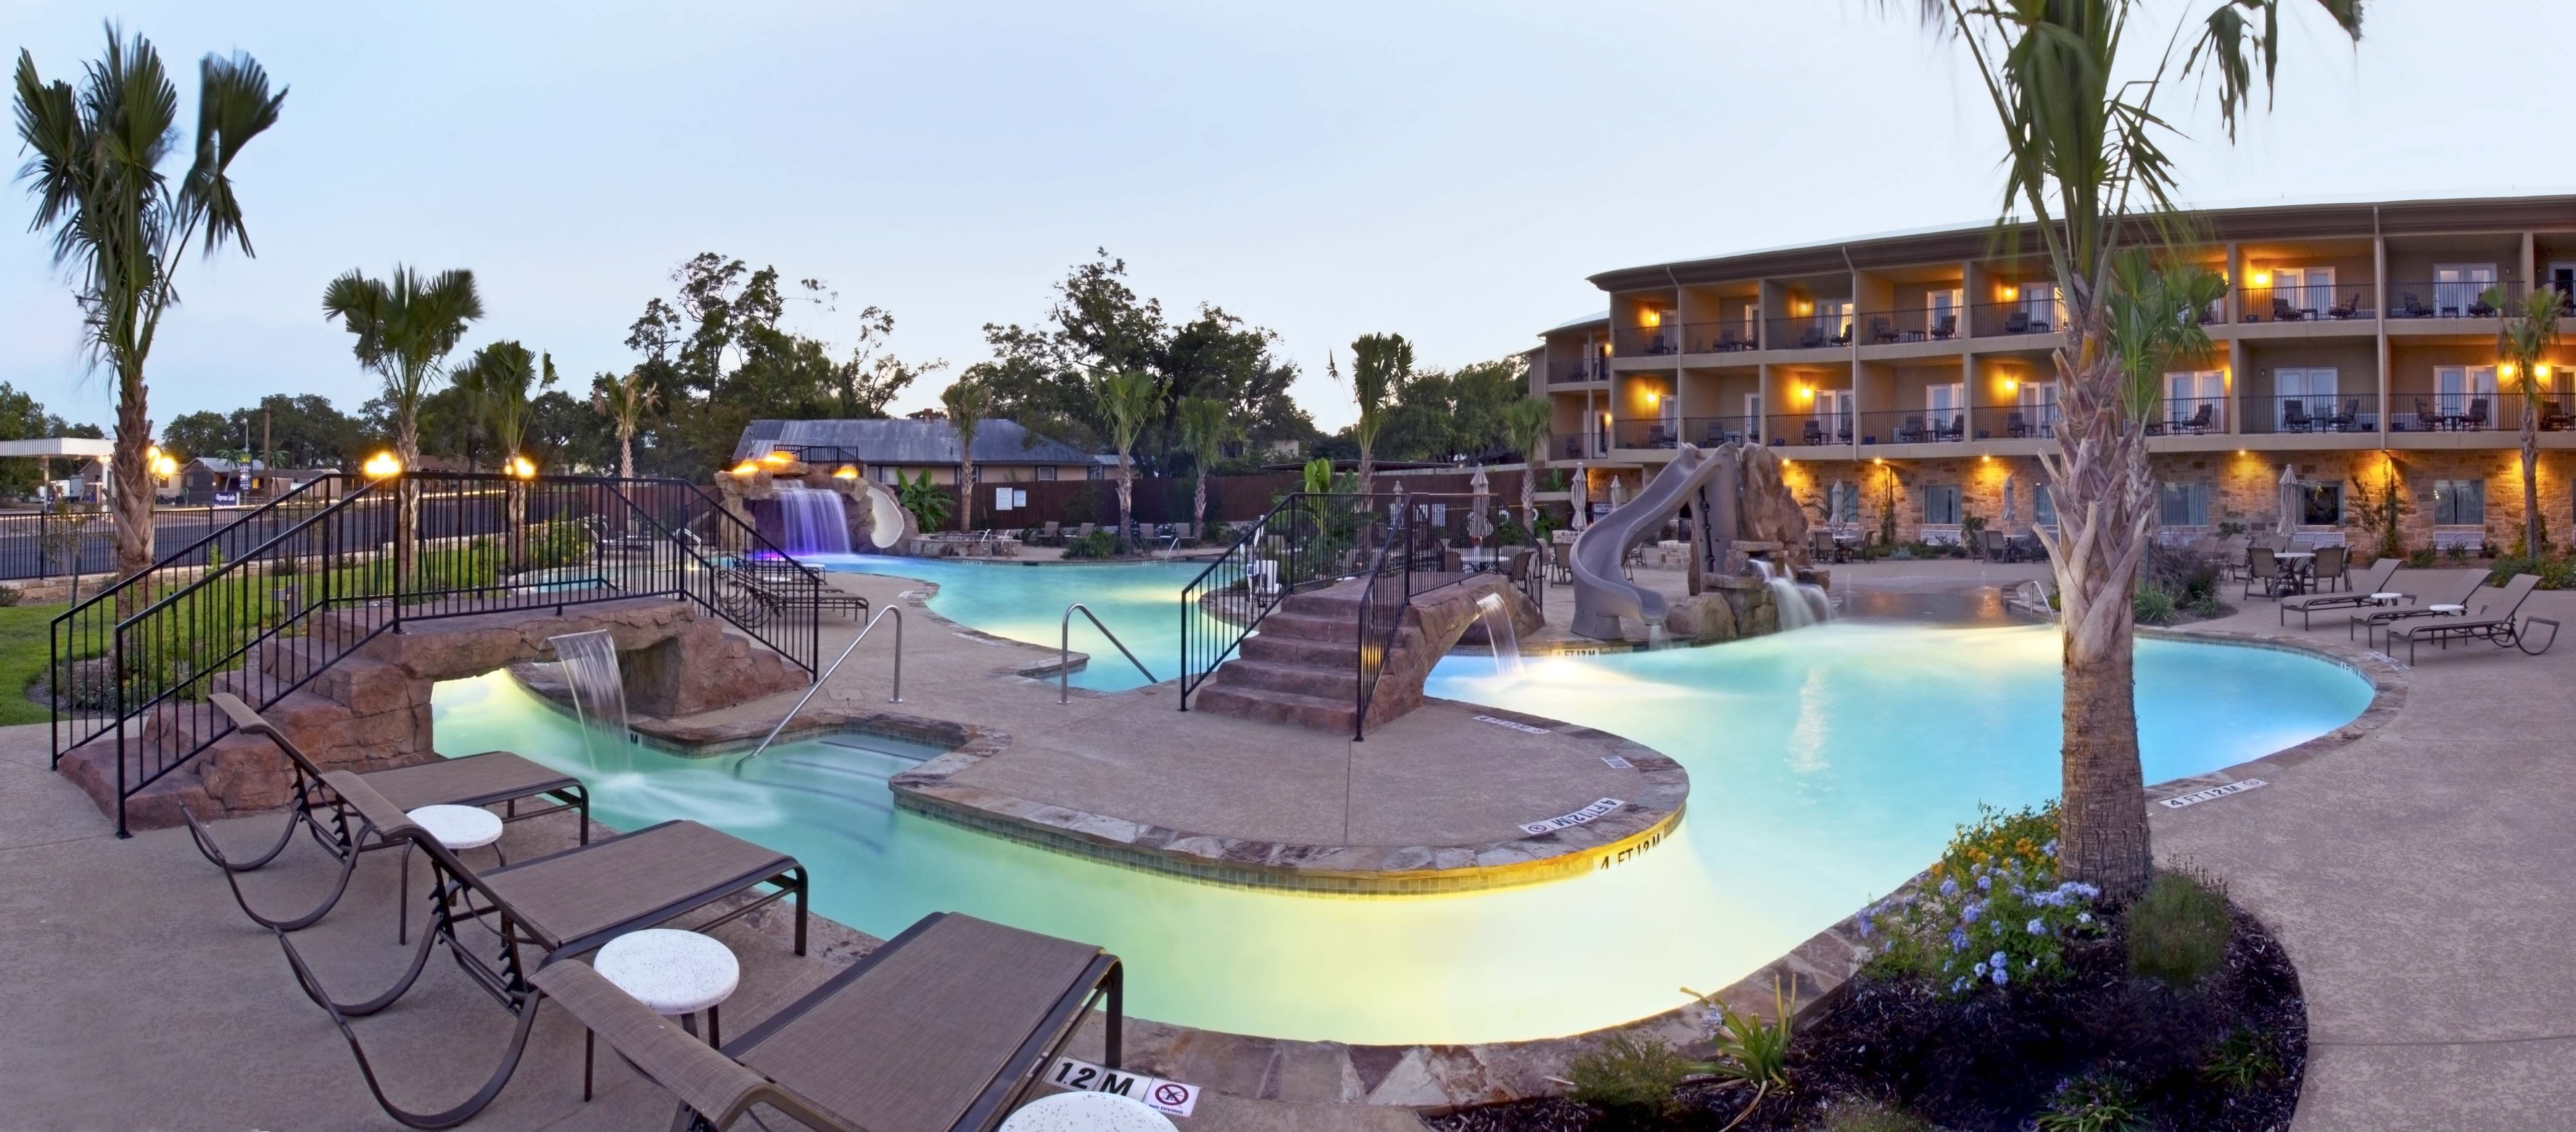 Holiday Inn Fredericksburg Tx Blue Haven Pools Pool Pool Designs